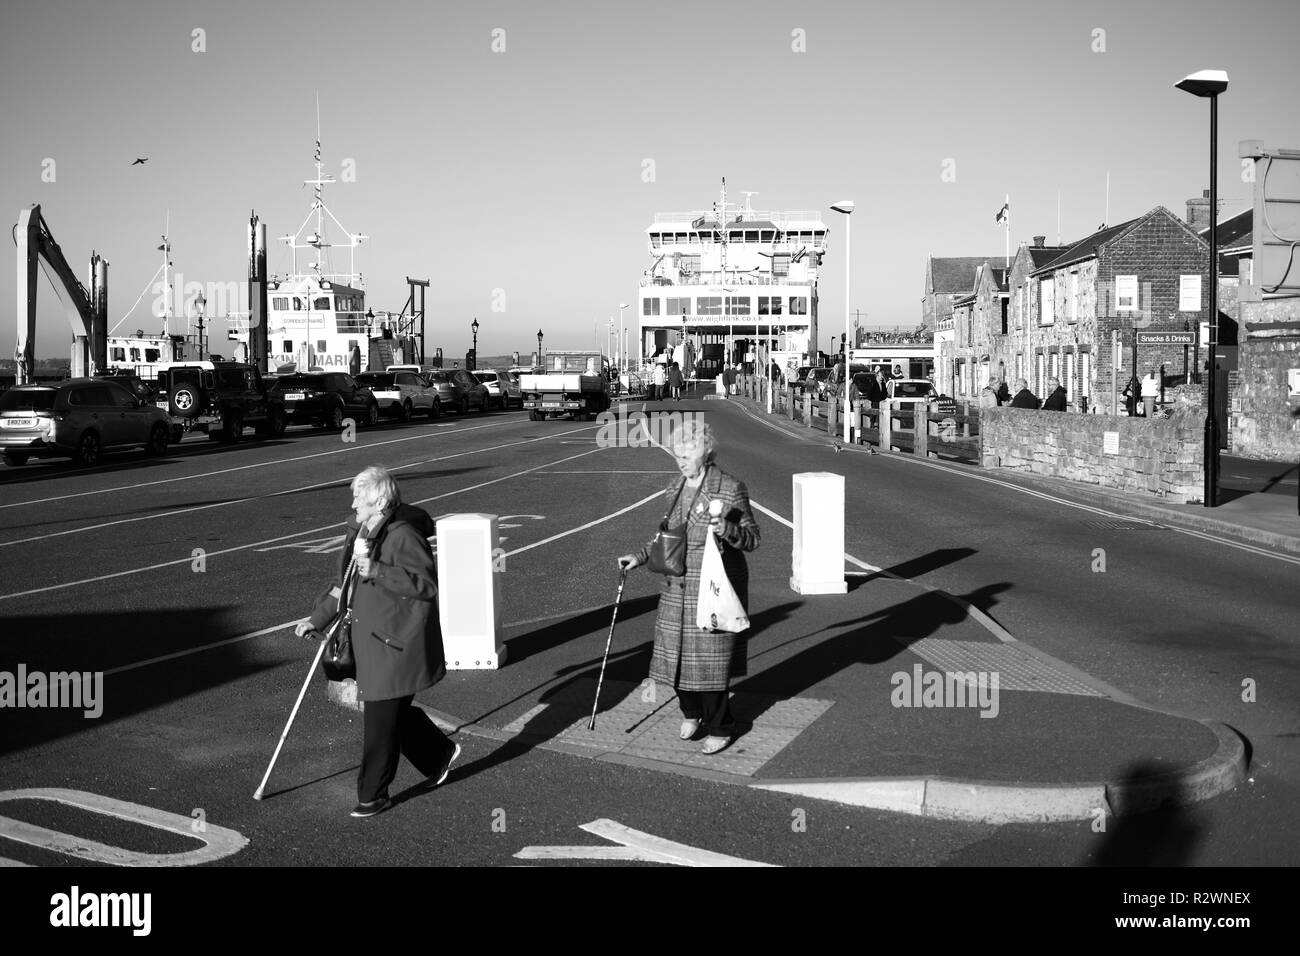 Two retired old Ladies crossing traffic island using sticks and carrying ice cream cones in their hands at Yarmouth Isle of Wight ferry park terminal - Stock Image